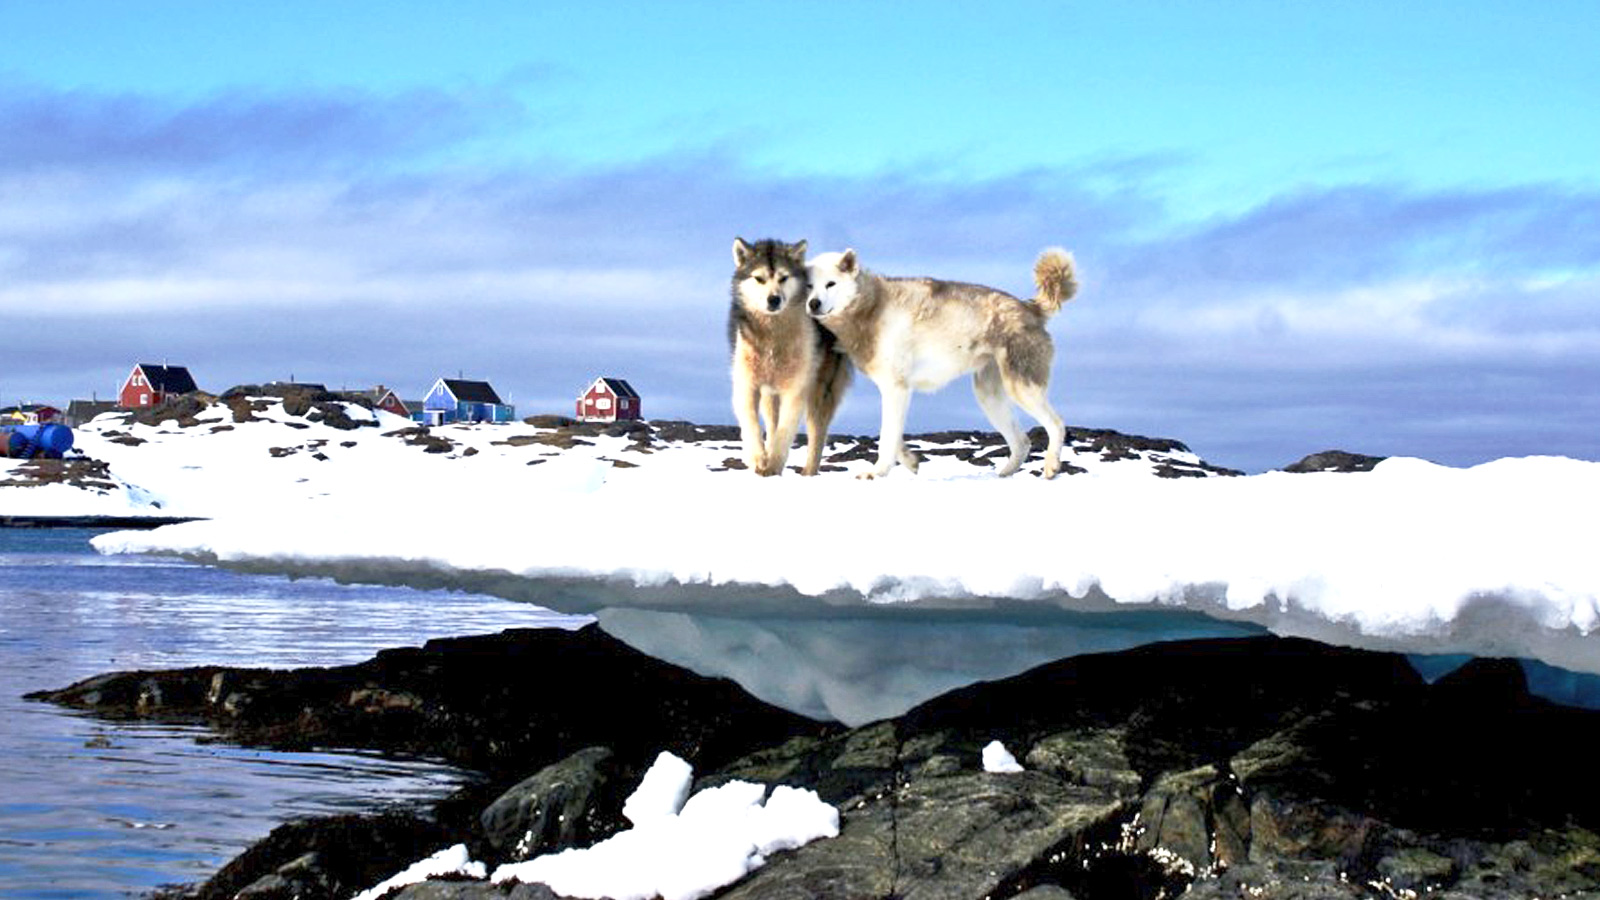 Segelexpedition durch Grönland mit Husky traveljunkies